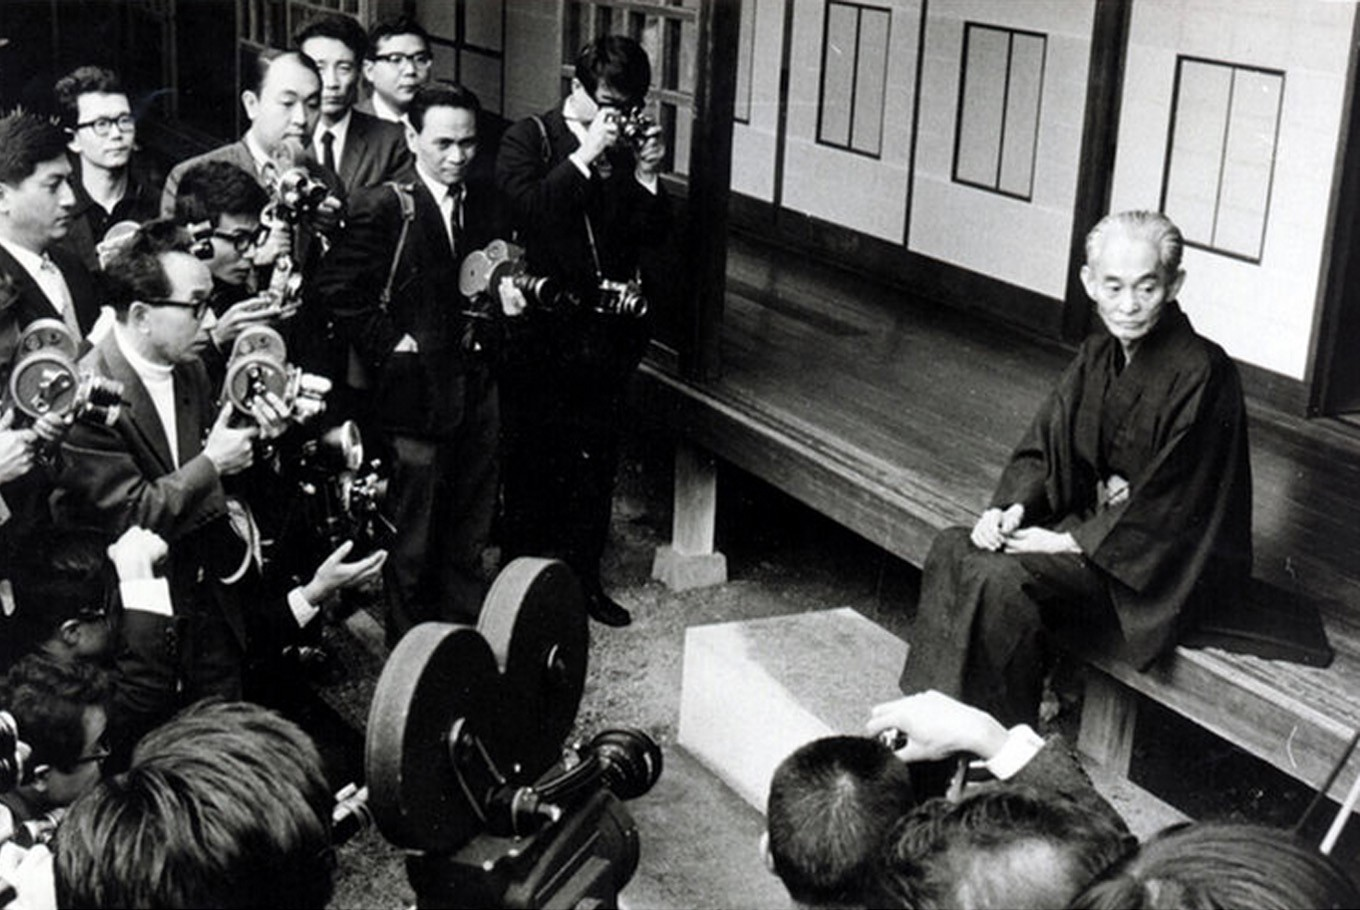 Kawabata first nominated for Nobel Prize in Literature in '66